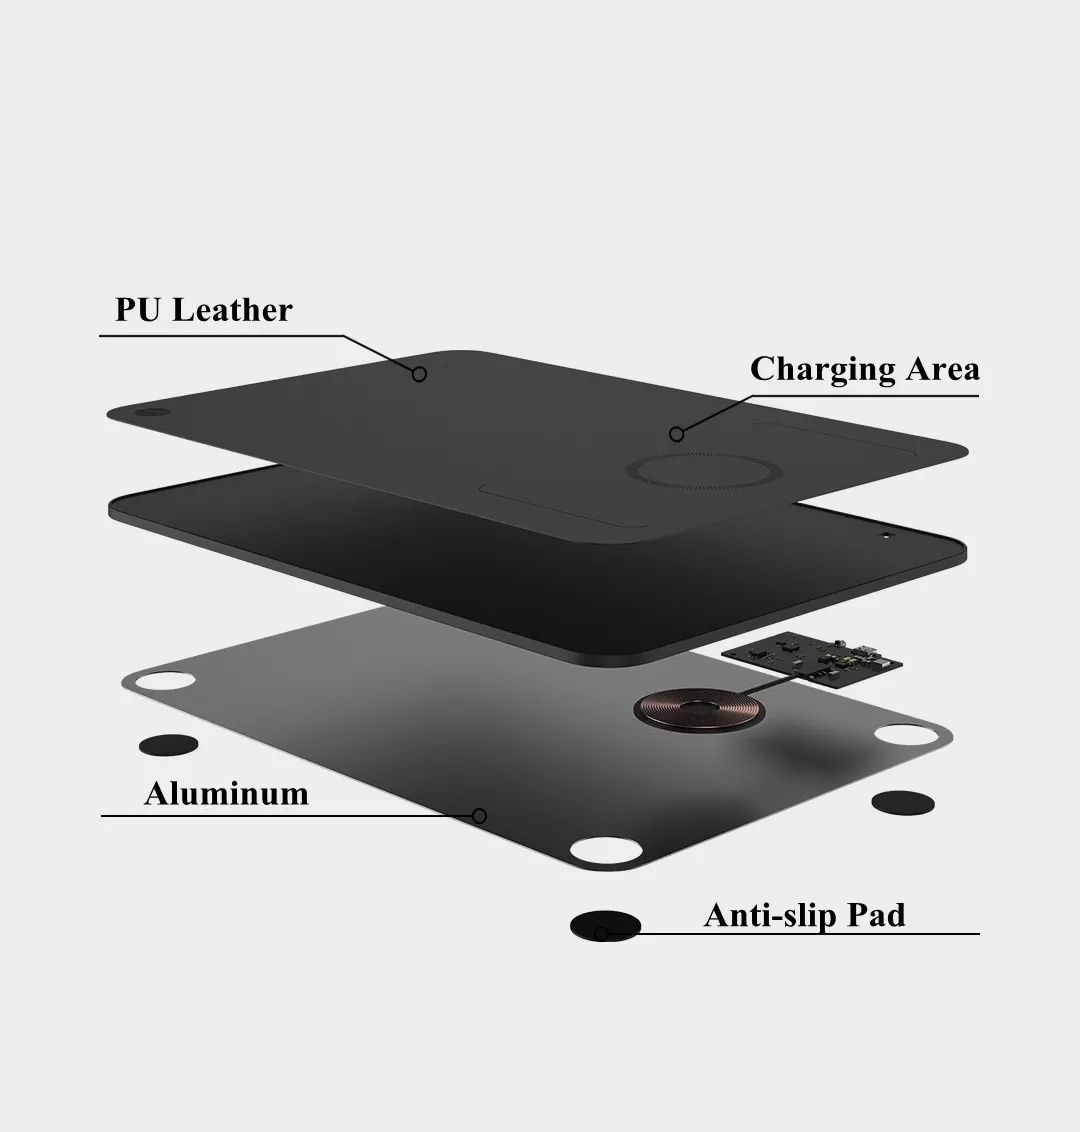 Xiaomi Miiiw Qi Wireless Charger Pu Leather Mouse Pad (8)